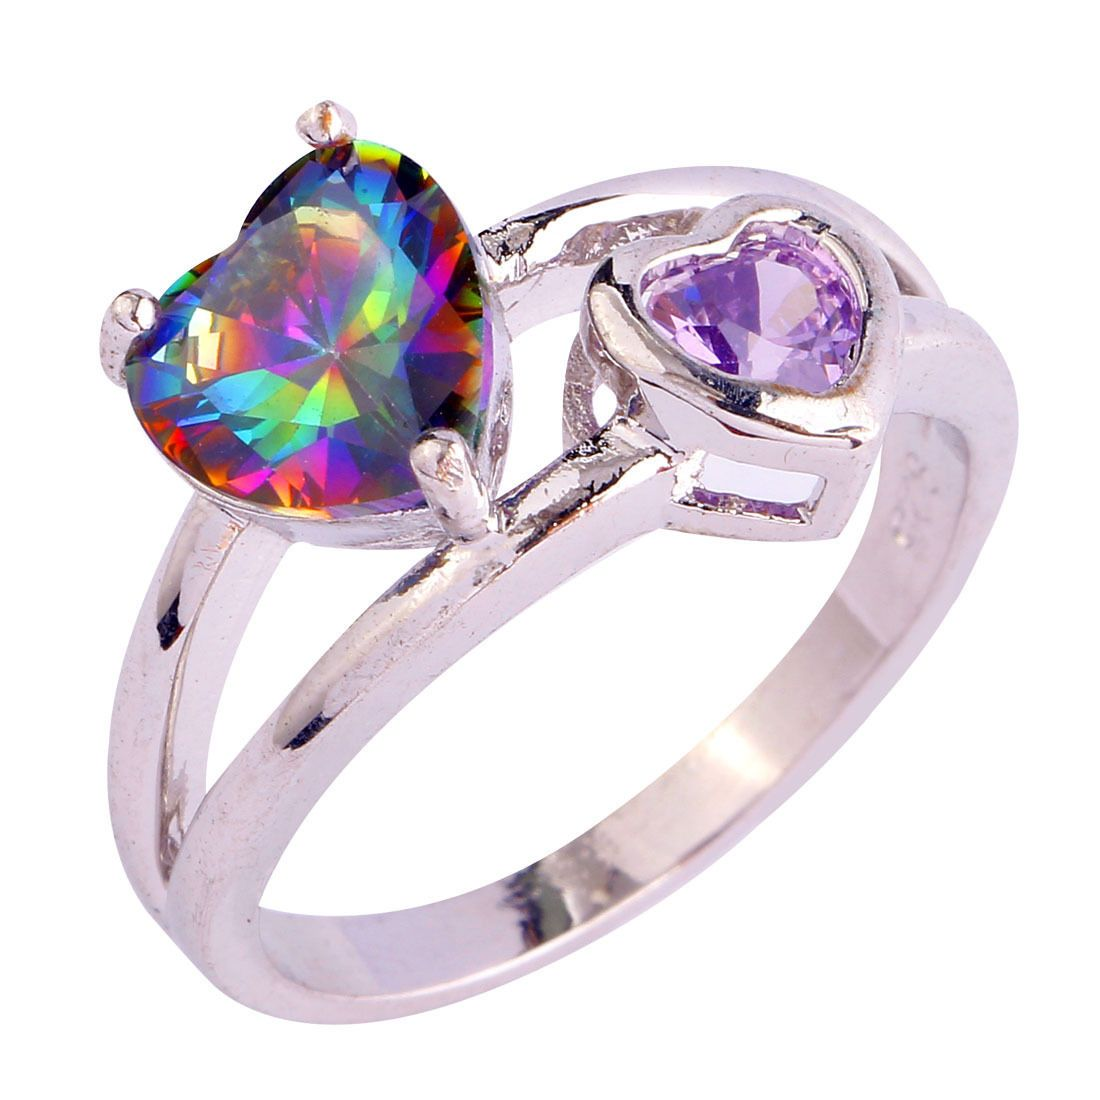 Classique Rose /& White Topaz Gemstone Jewelry Silver Ring Taille 6 7 8 9 10 11 12